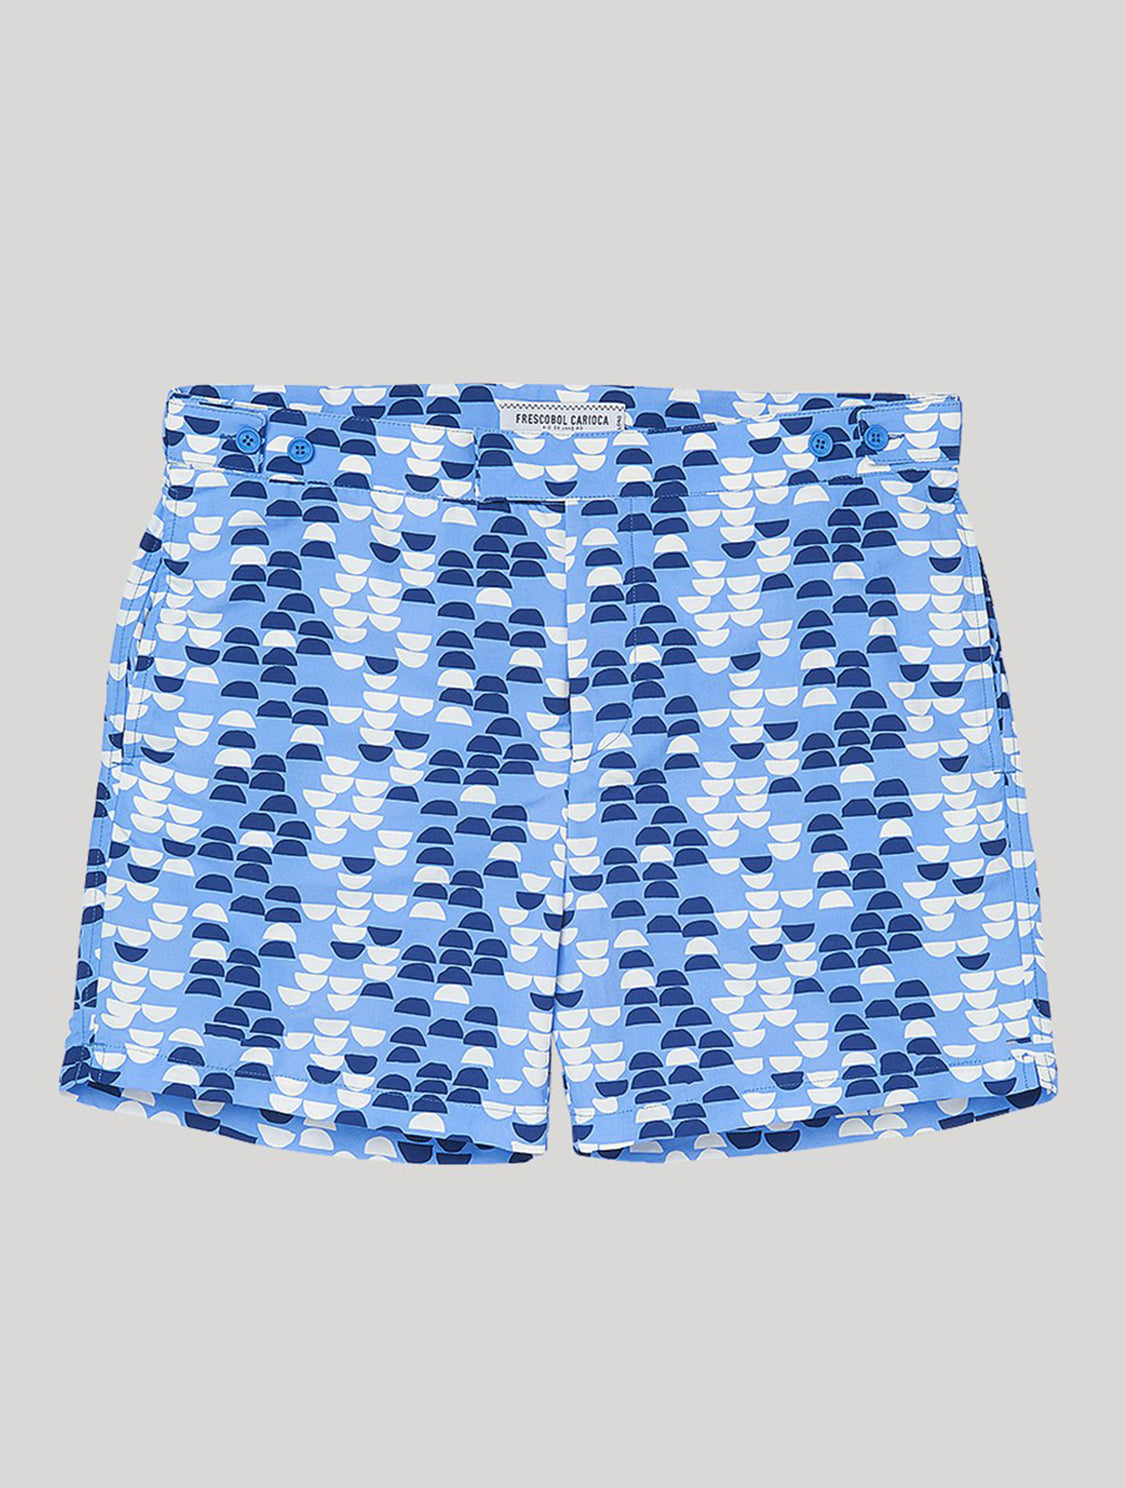 TAILORED SWIM SHORTS SUMMER SAMBA PRINT